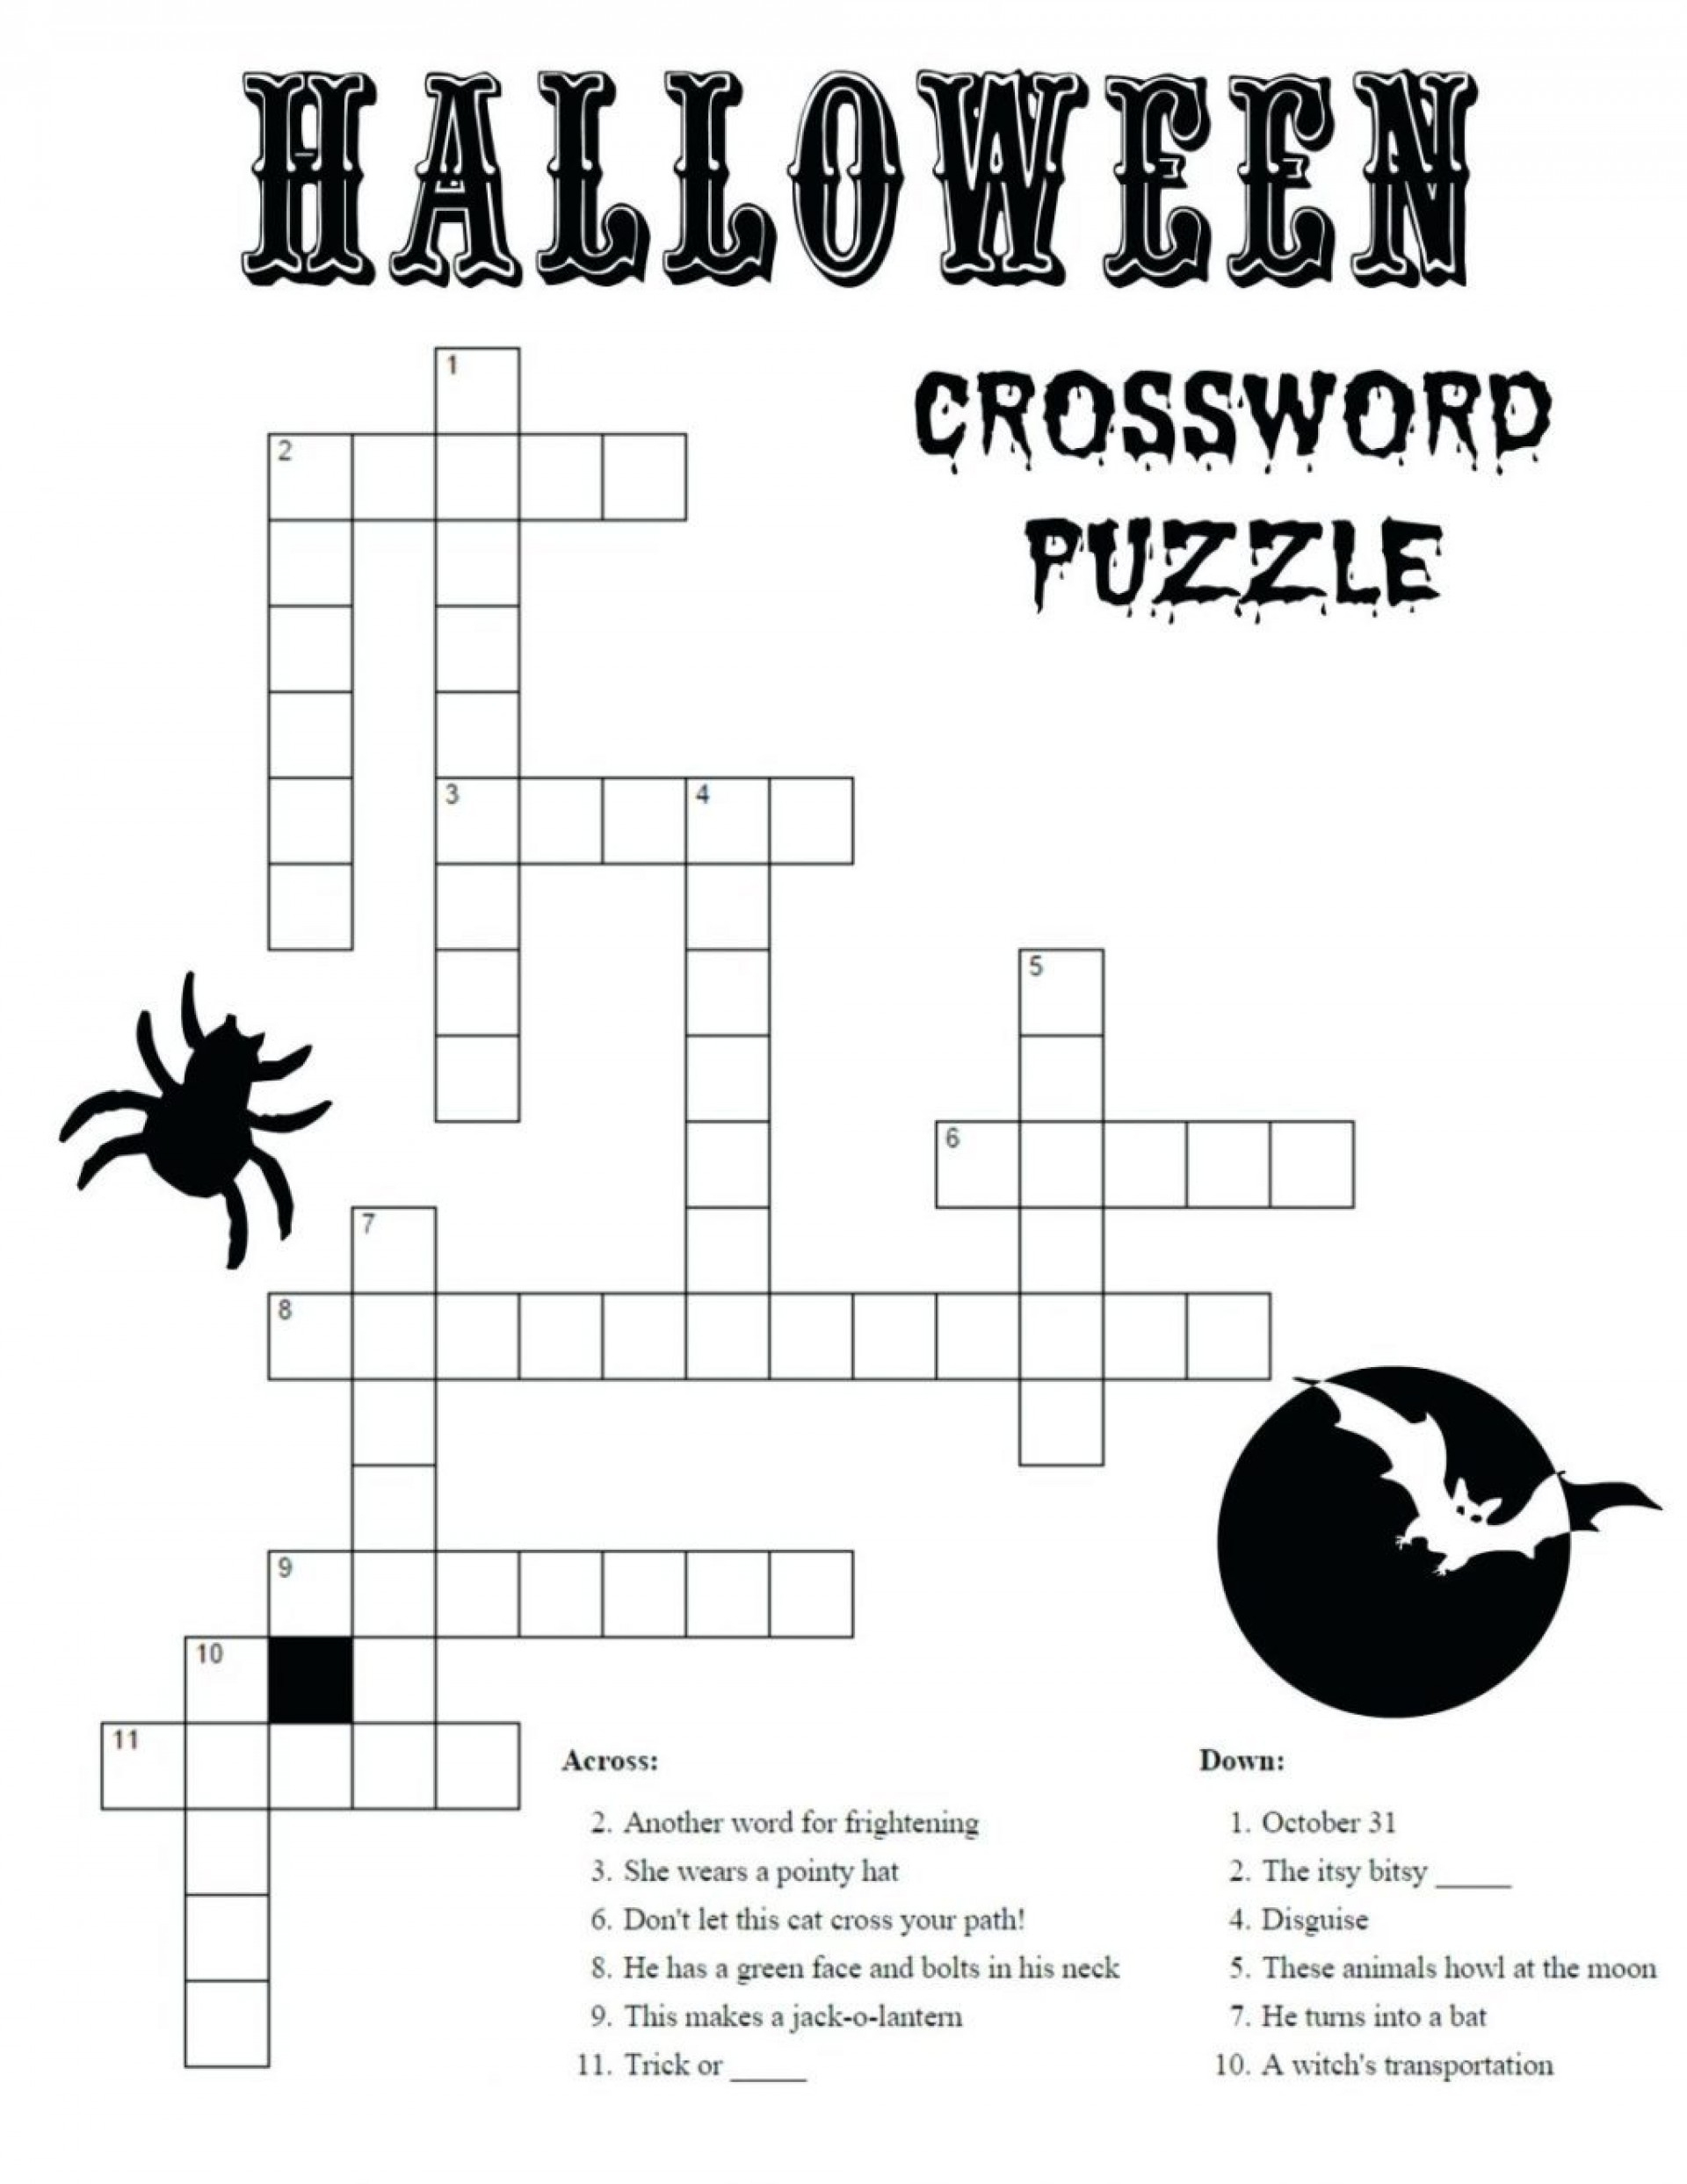 Wonderful Halloween Crossword Puzzle Maker ~ Themarketonholly - Jigsaw Puzzle Maker Free Online Printable